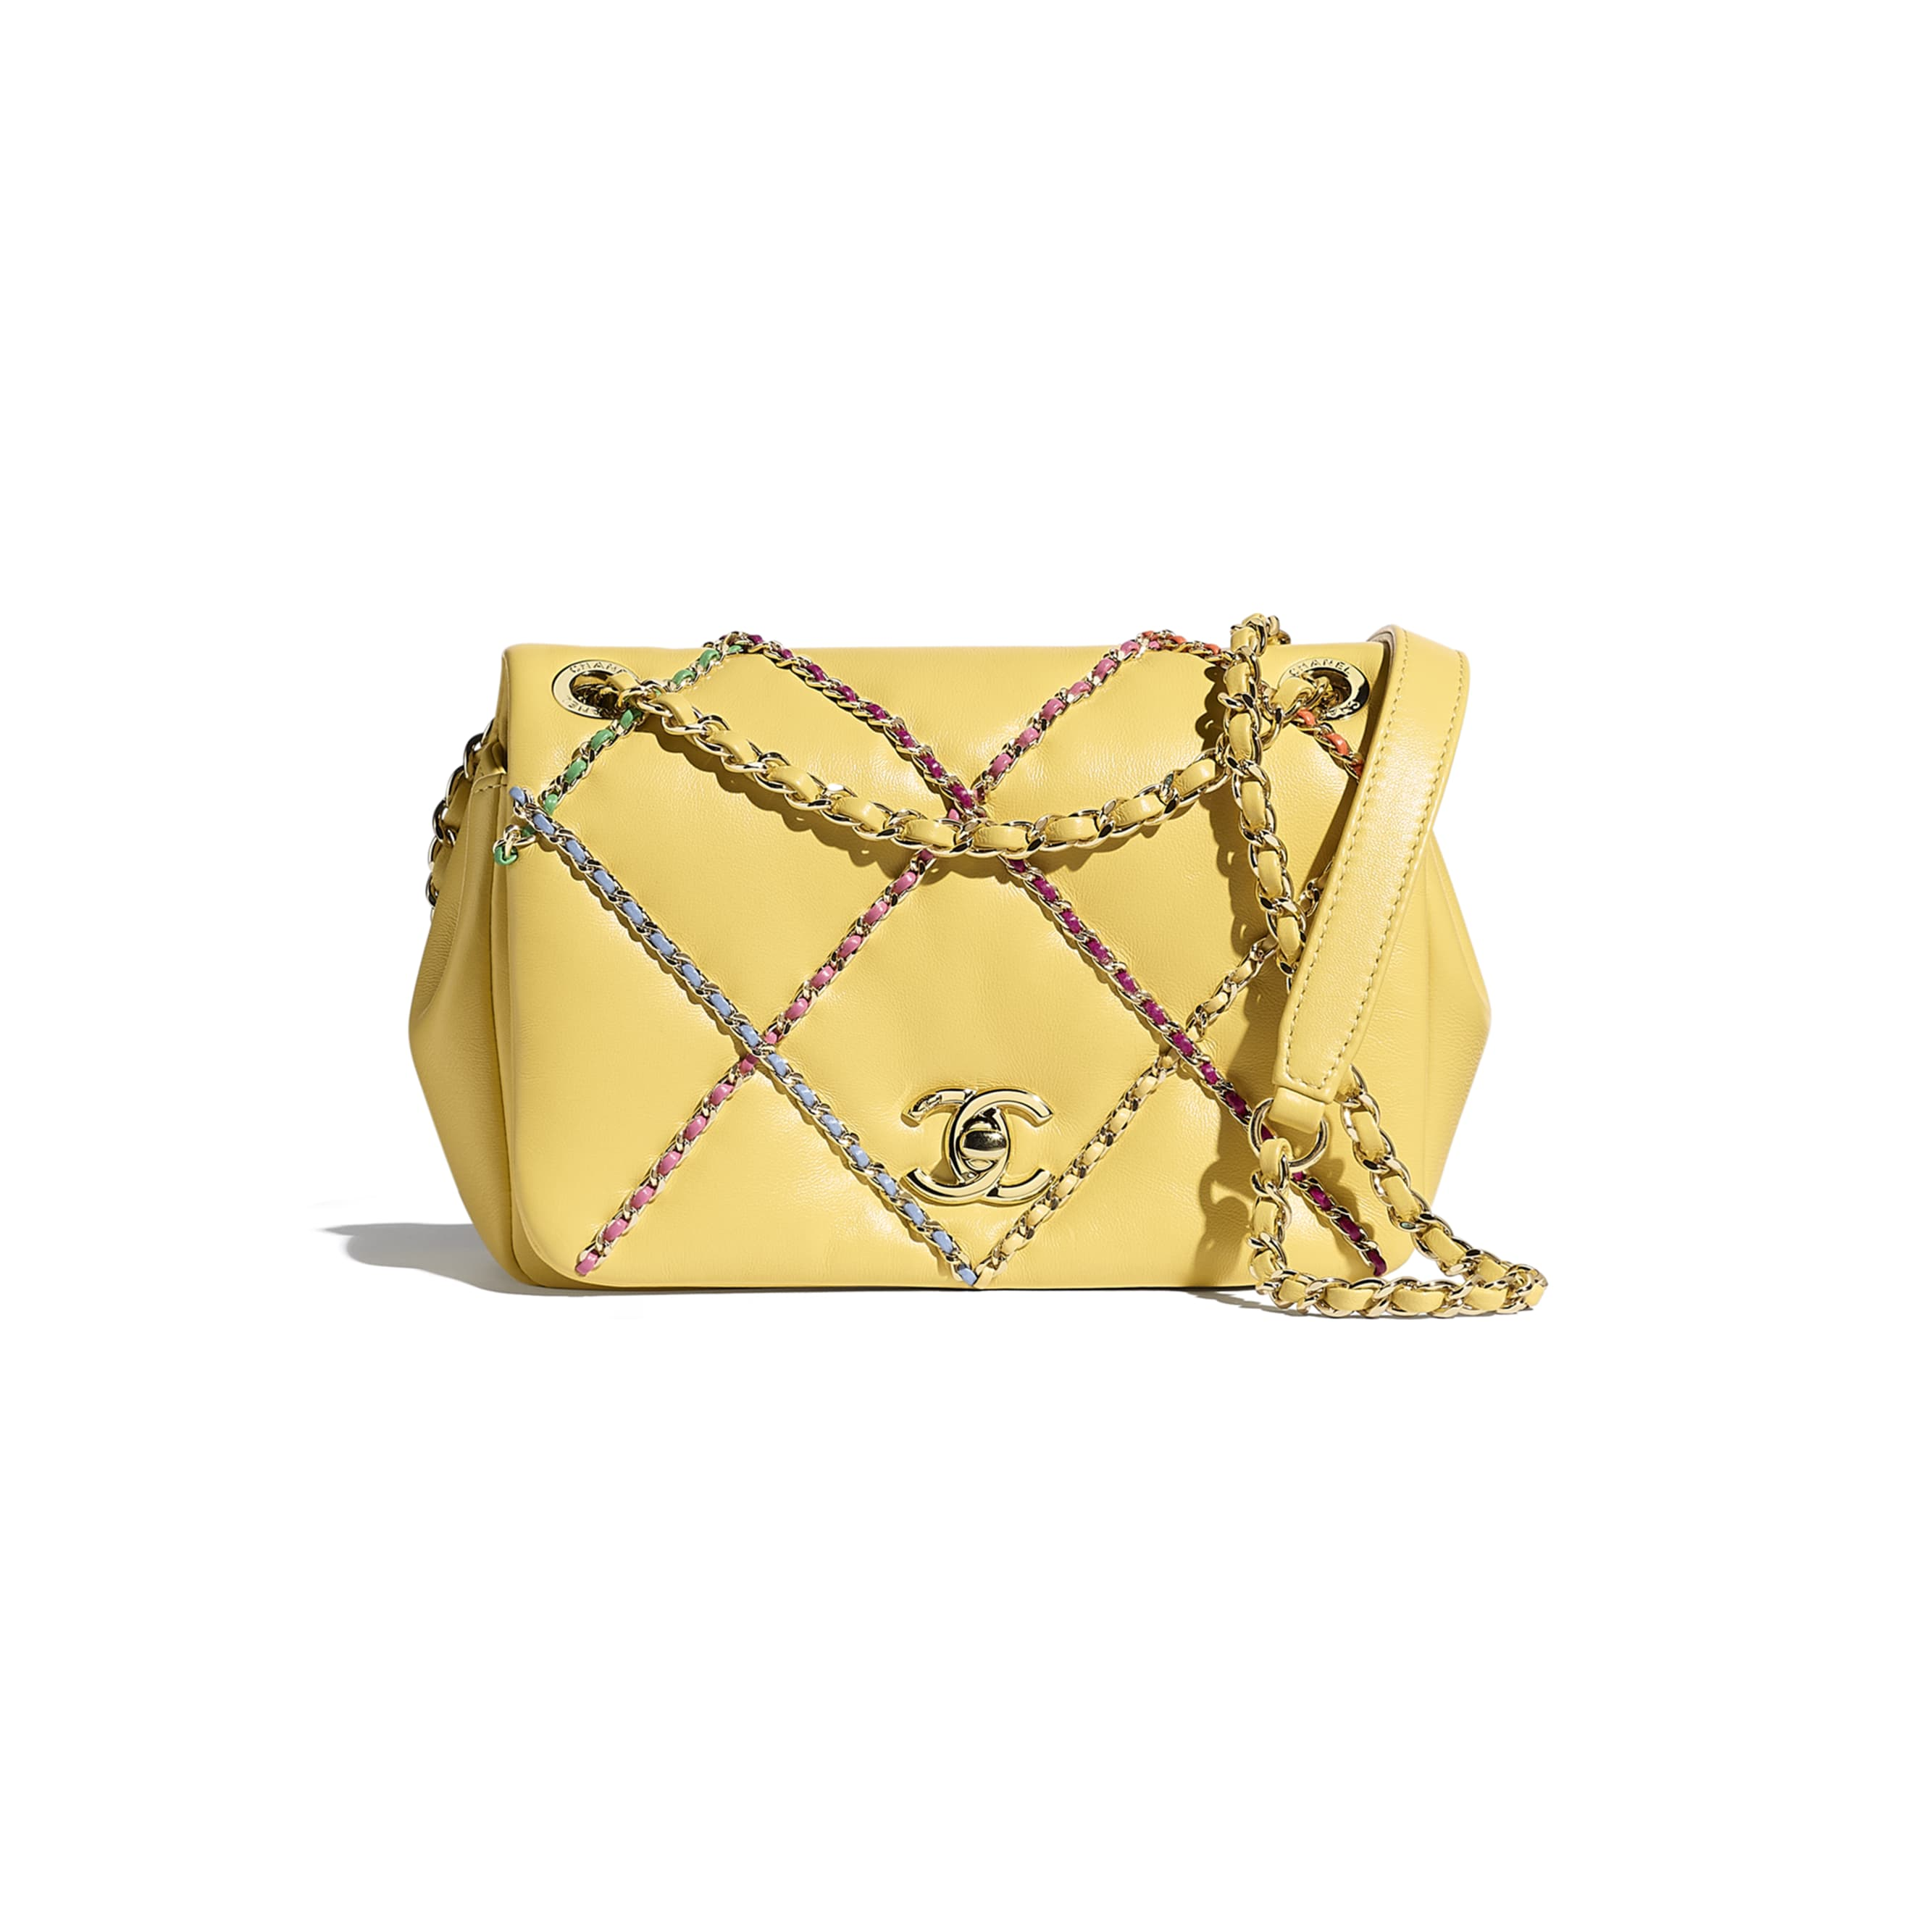 Small Flap Bag - Yellow & Multicolour - Lambskin & Gold Metal  - CHANEL - Default view - see standard sized version